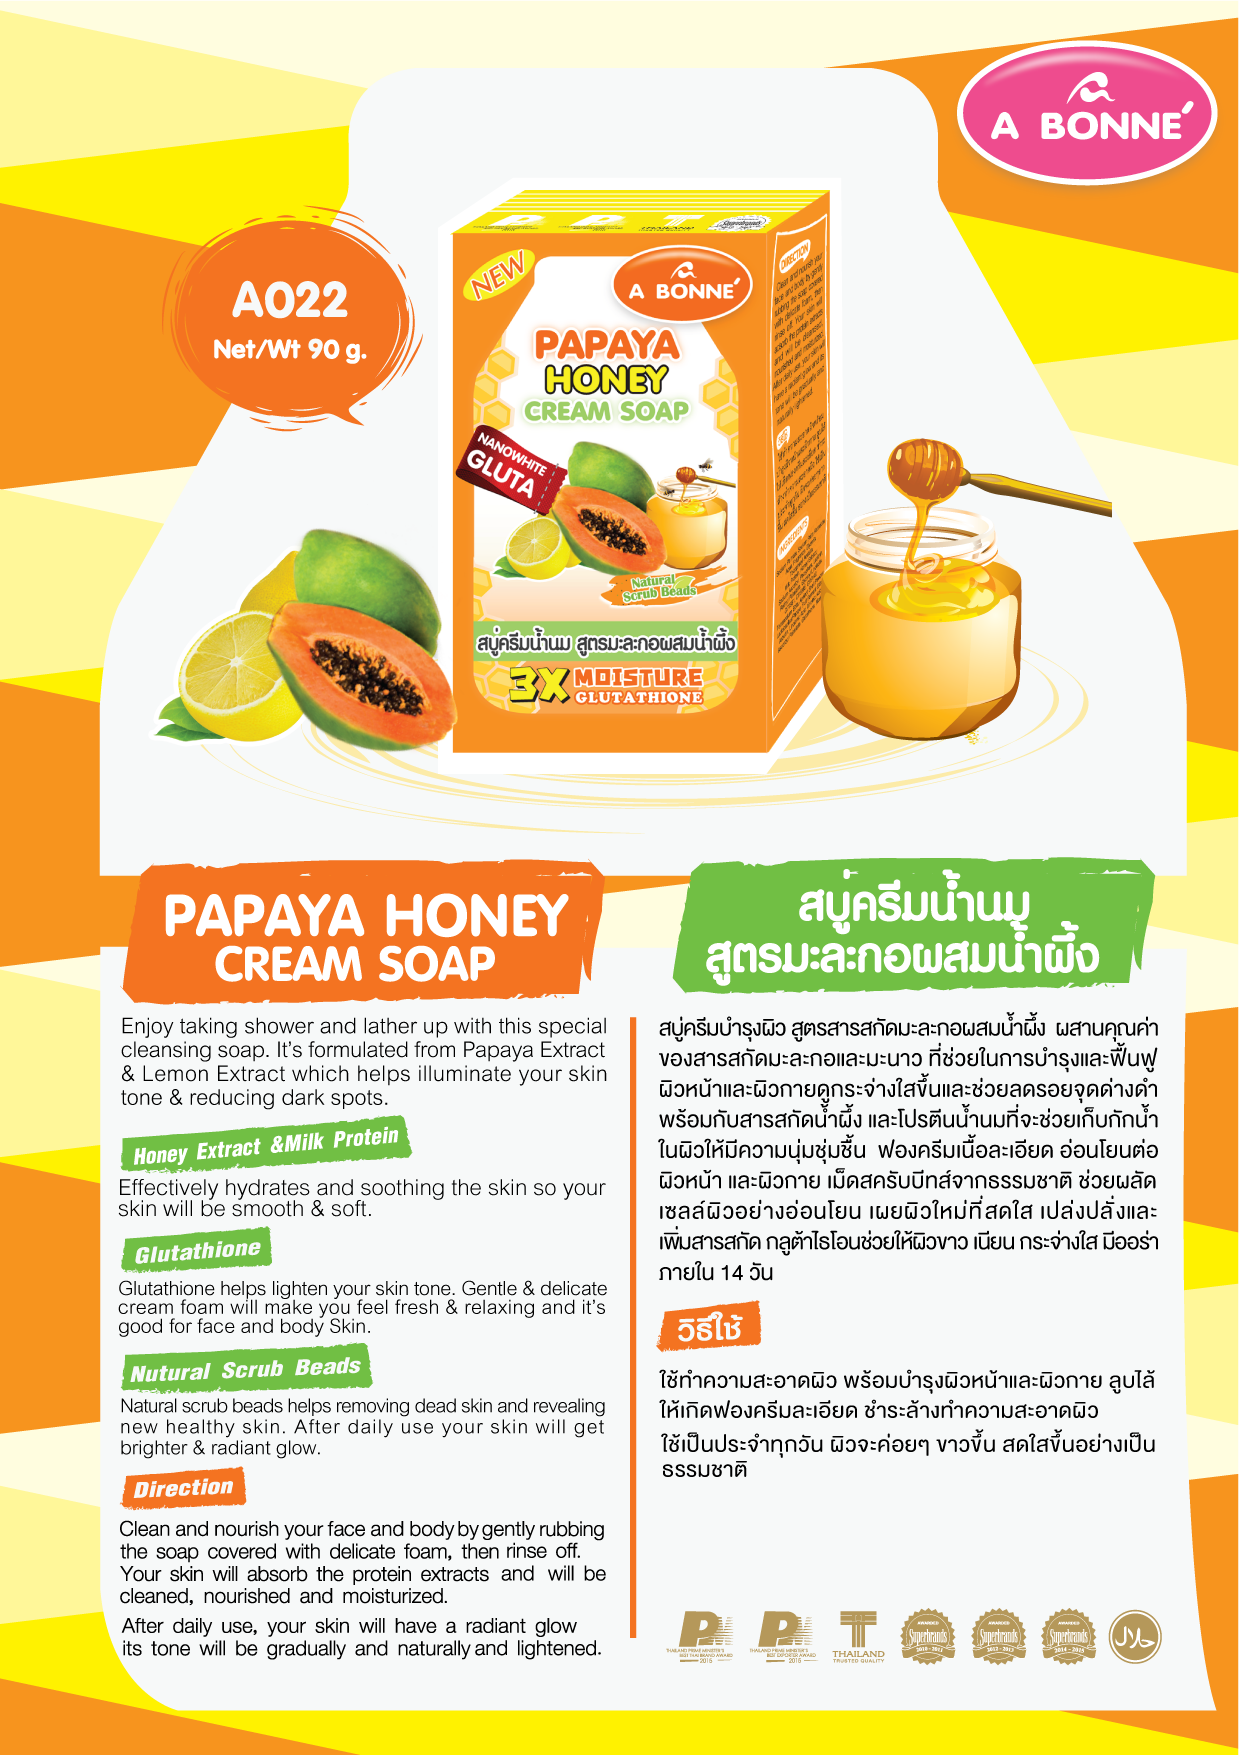 Papaya Honey Cream Soap